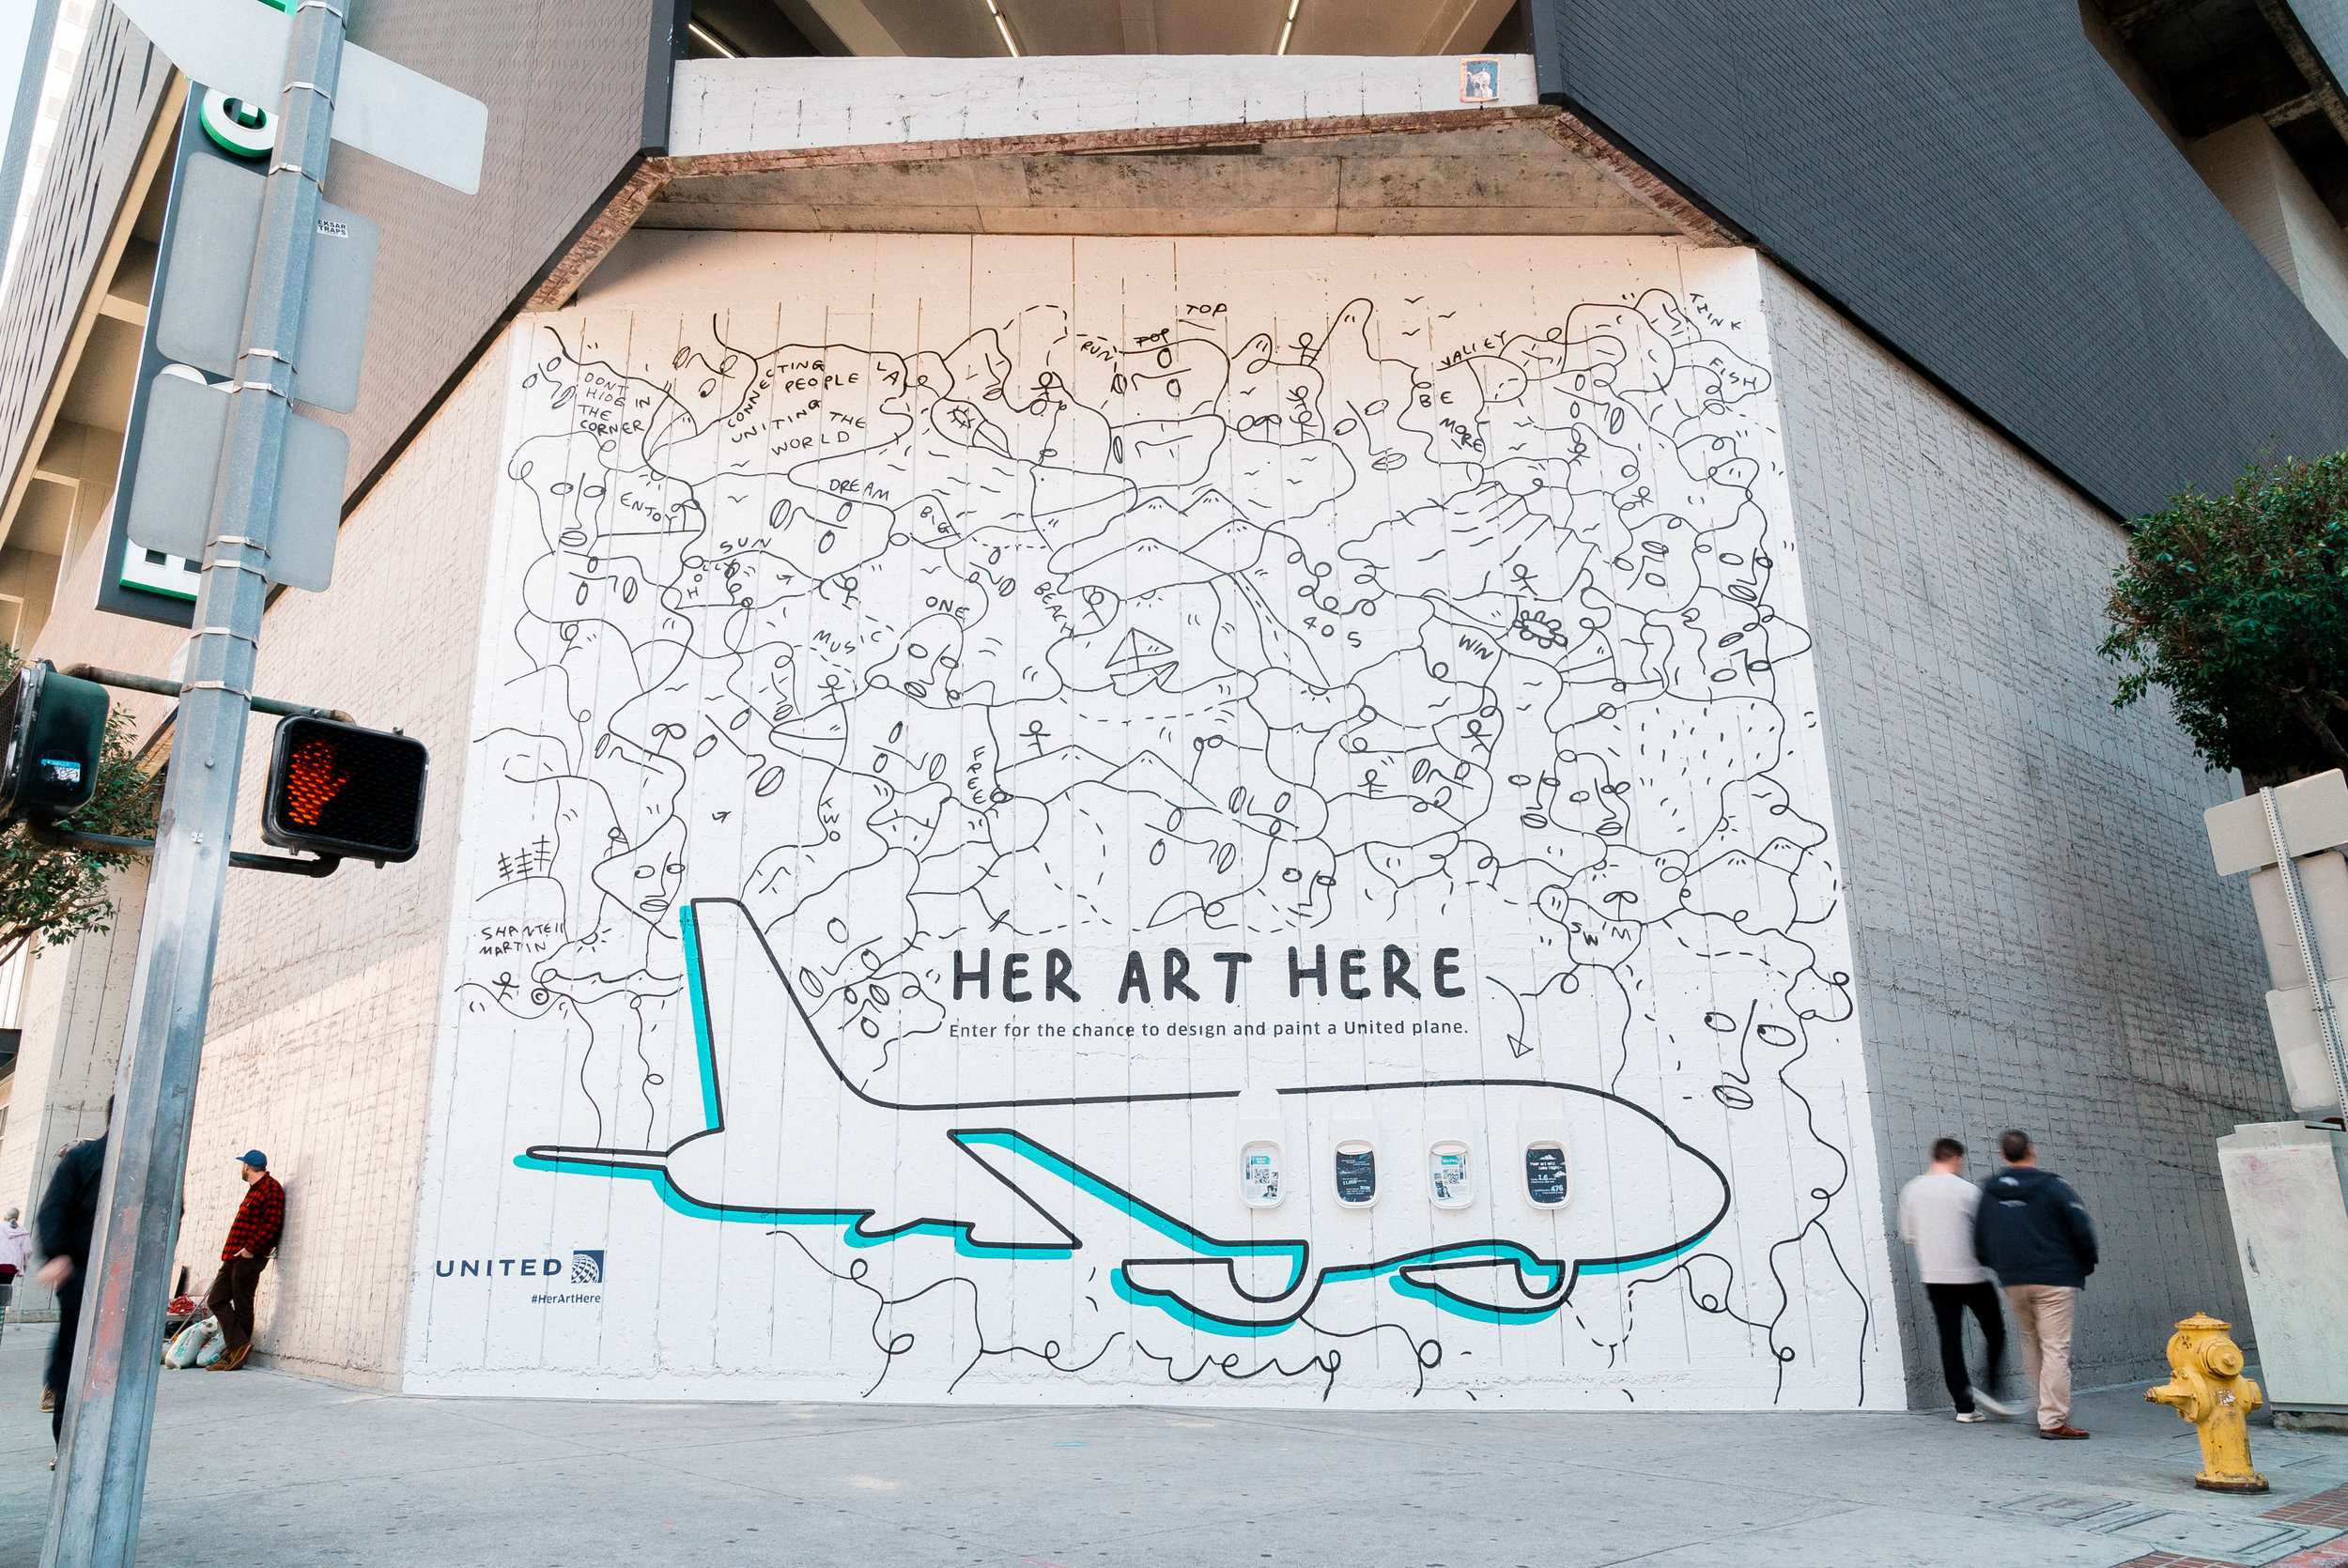 [Her Art Here] Shantell Martin x United Airlines - March 2019 - 8th and Flower, Los Angeles